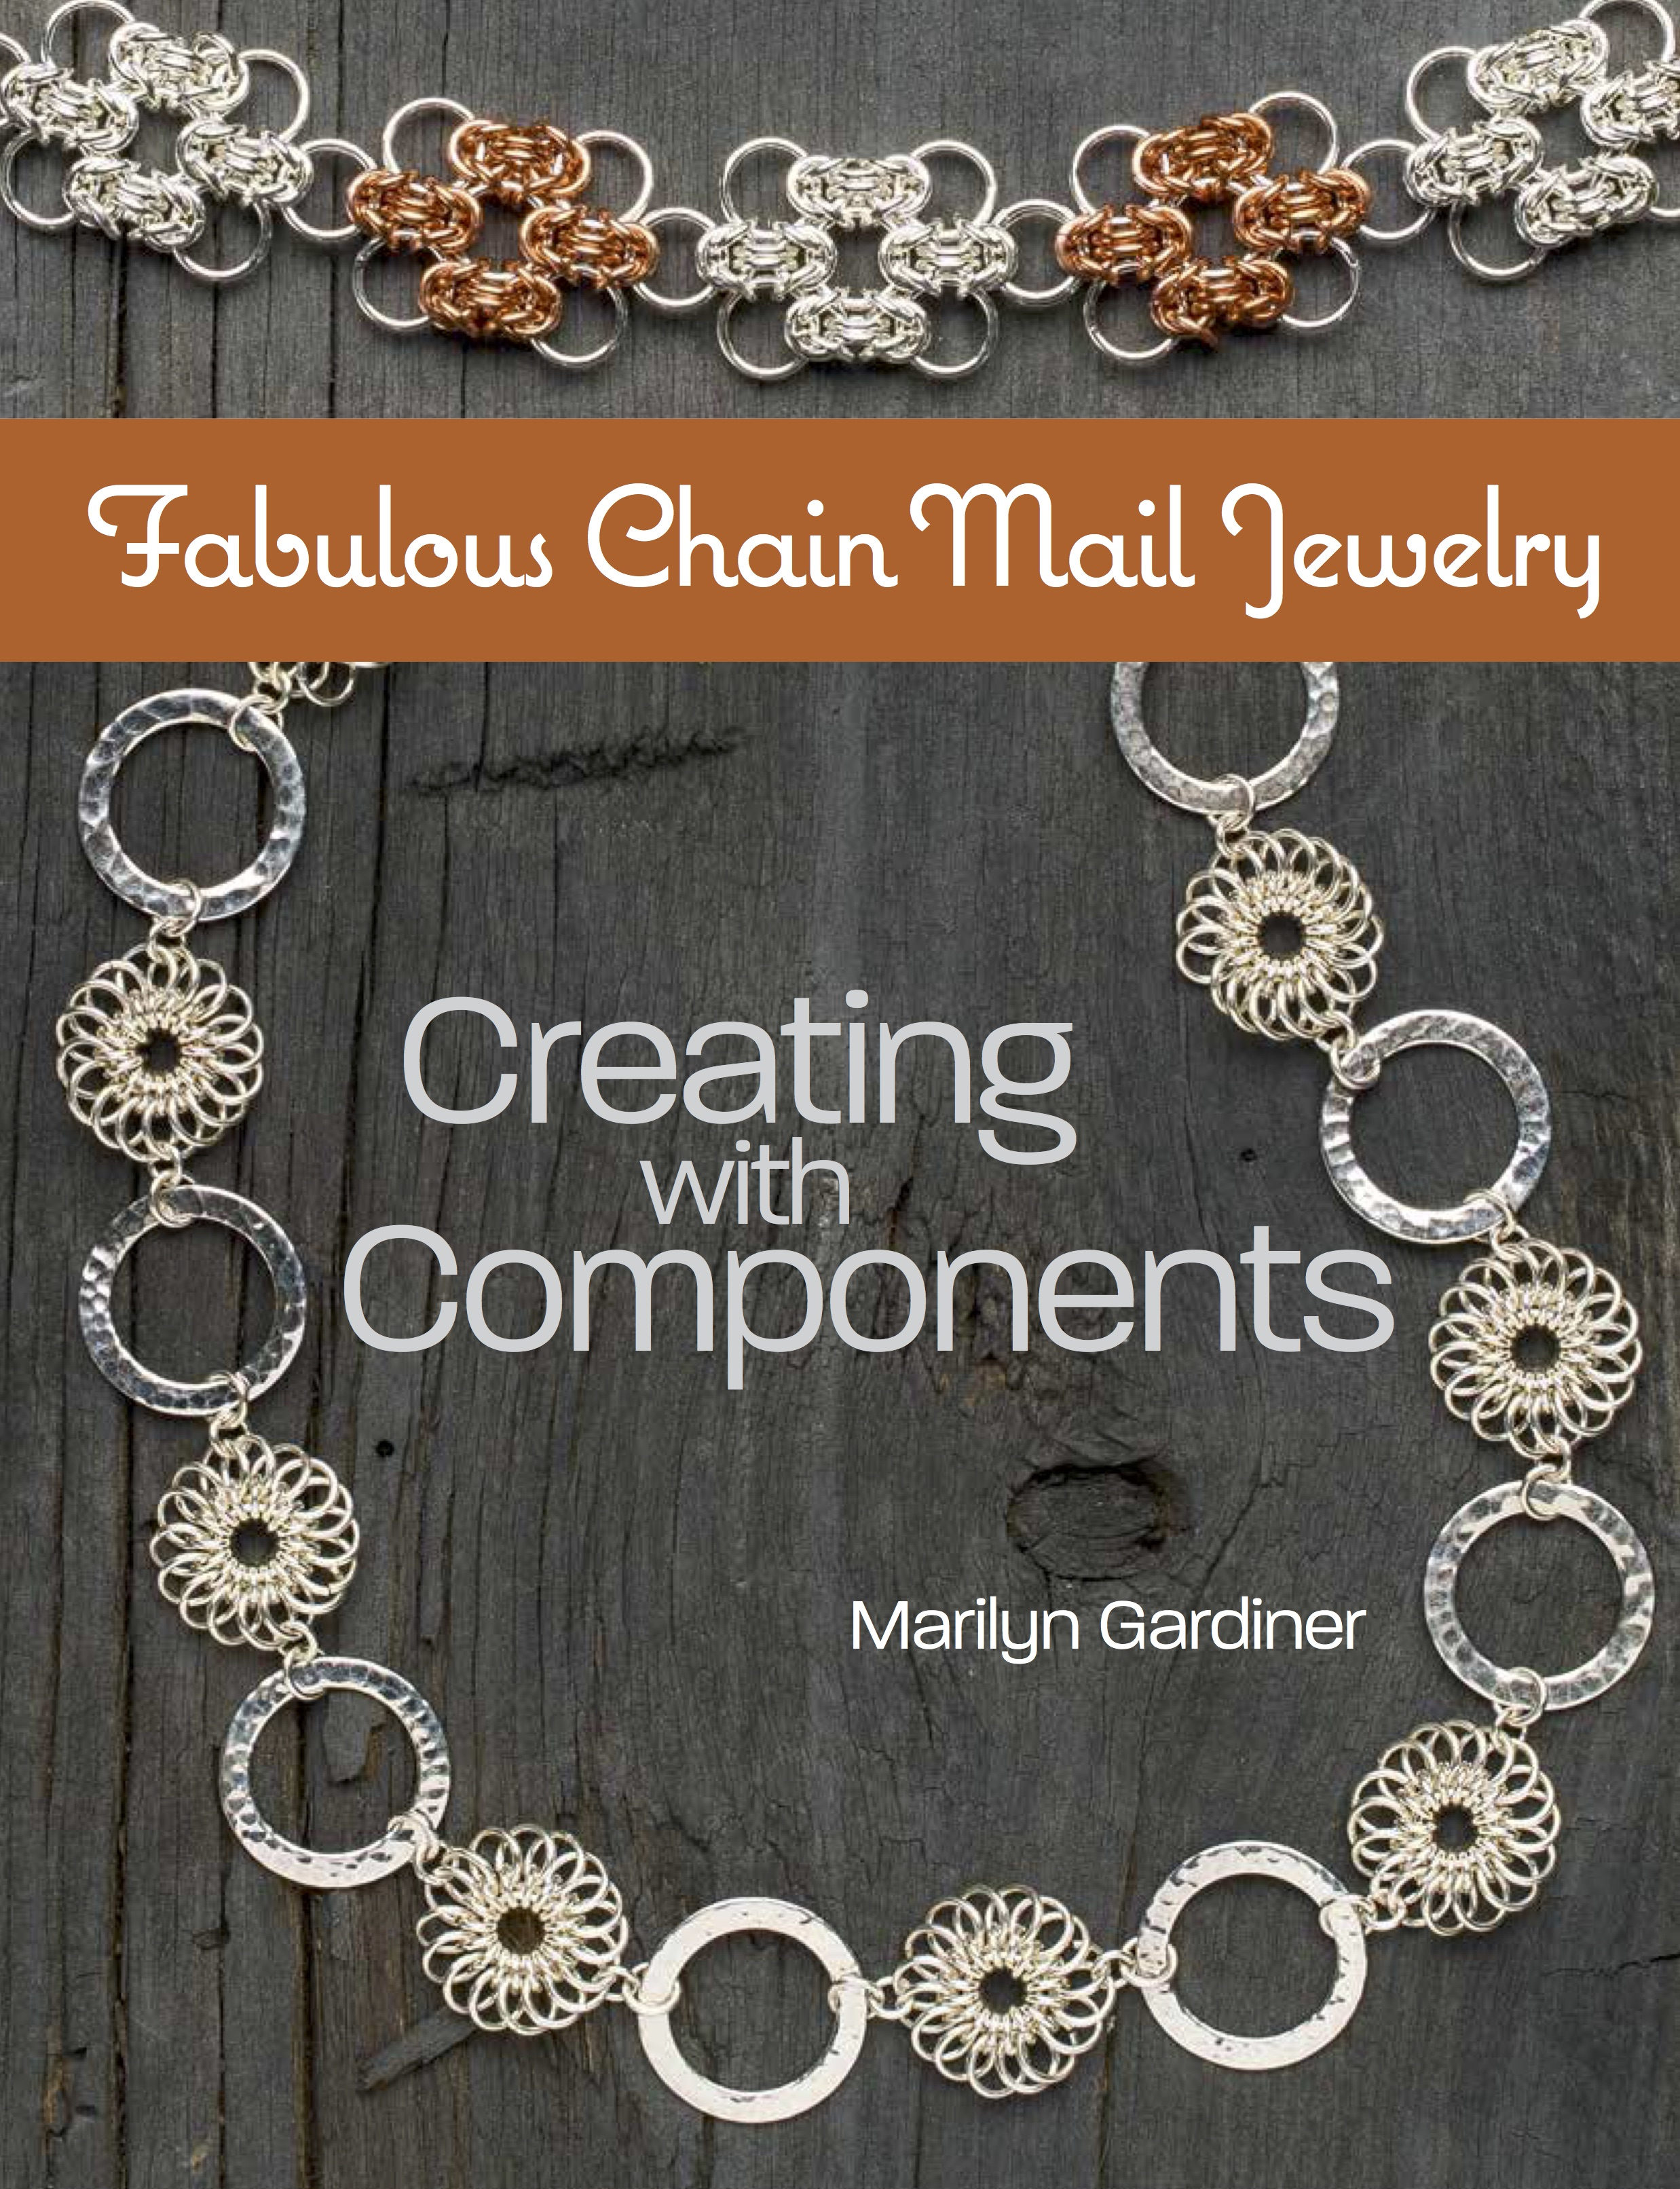 Free Tutorials - Marilyn Gardiner Jewellery Design